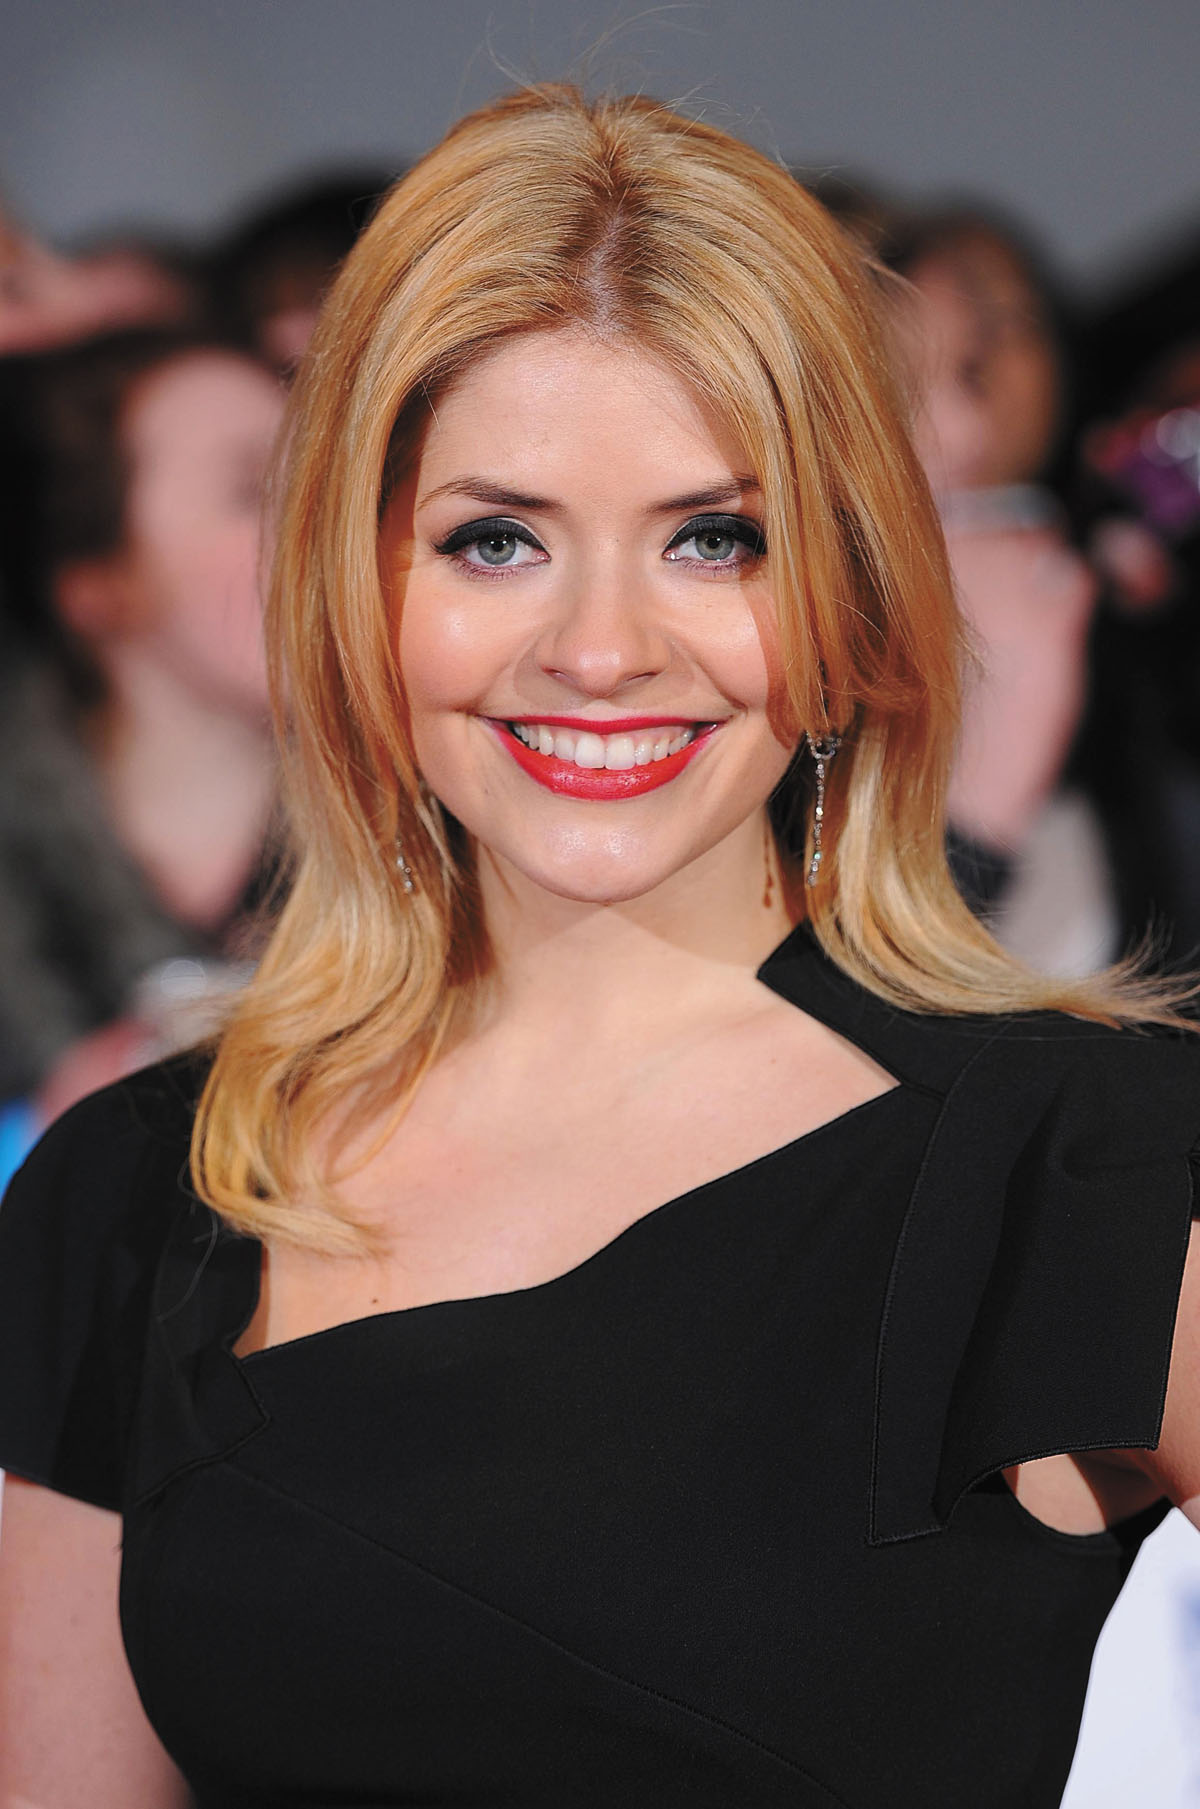 Ultra Hd 4k Wallpapers For Iphone Holly Willoughby Picture Full Hd Pictures